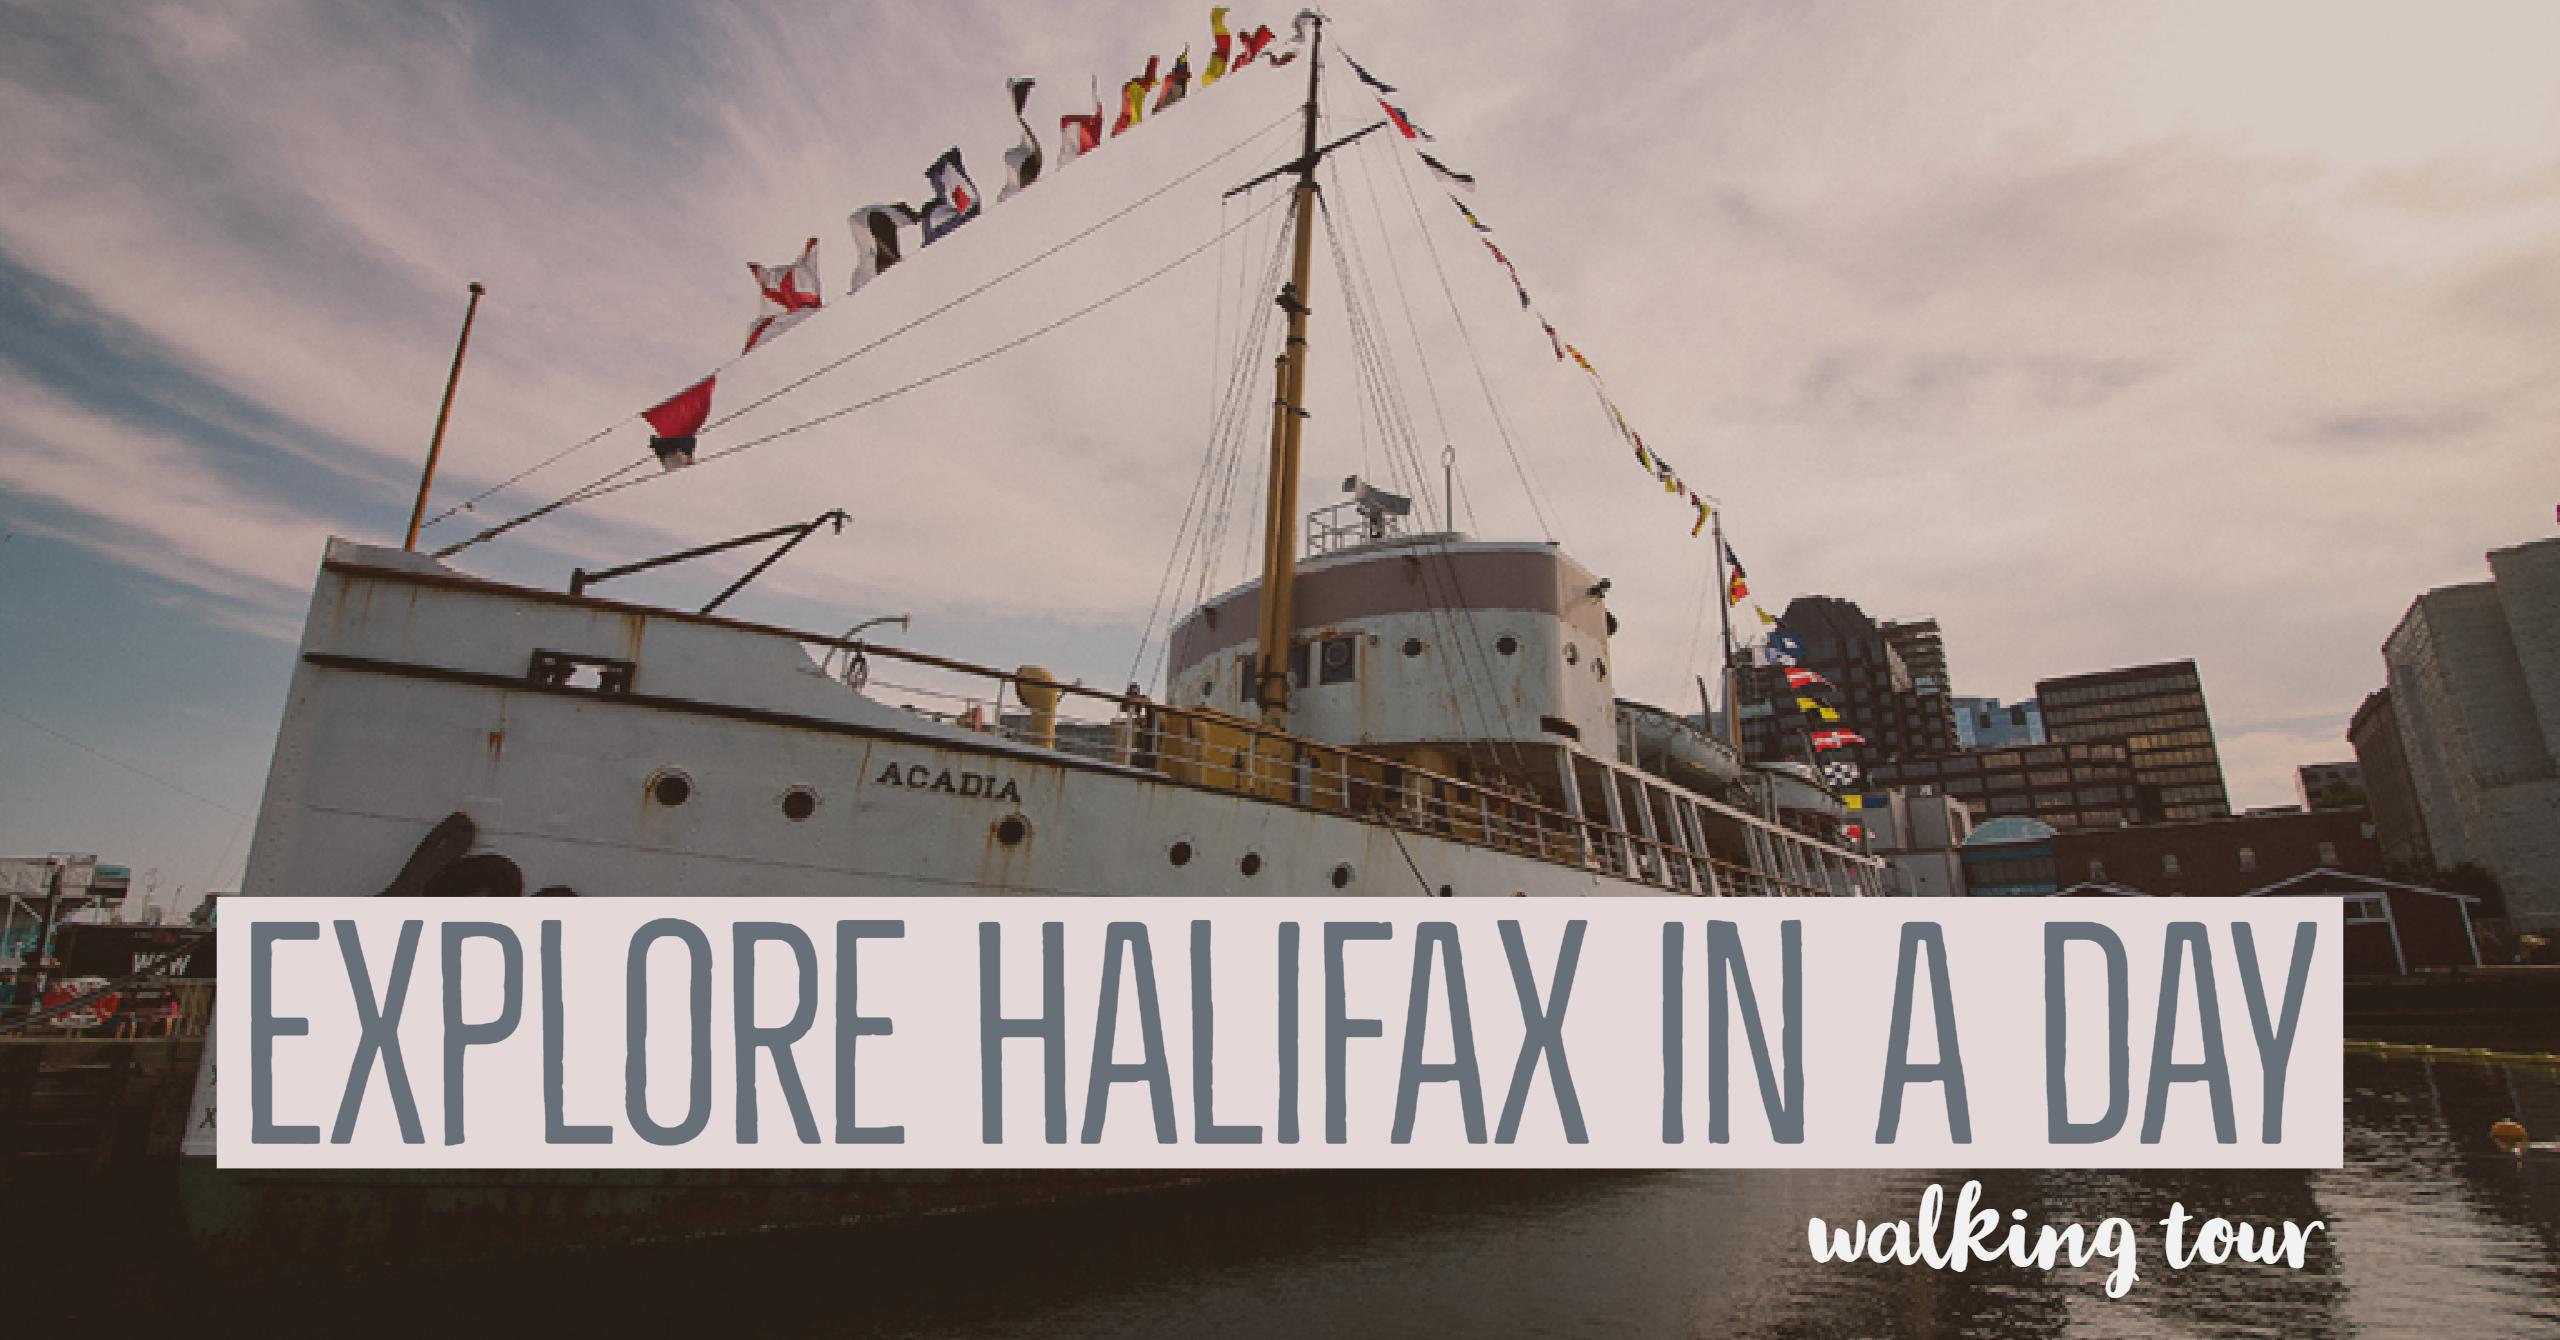 Explore Halifax in a day: walking tour - From its delicious eats, historic buildings and magnificent waterfront, there is much to do in Halifax. Bring your walking shoes and a camera, because you're going to want to capture the beauty of this city on the Atlantic Ocean | My Wandering Voyage travel blog